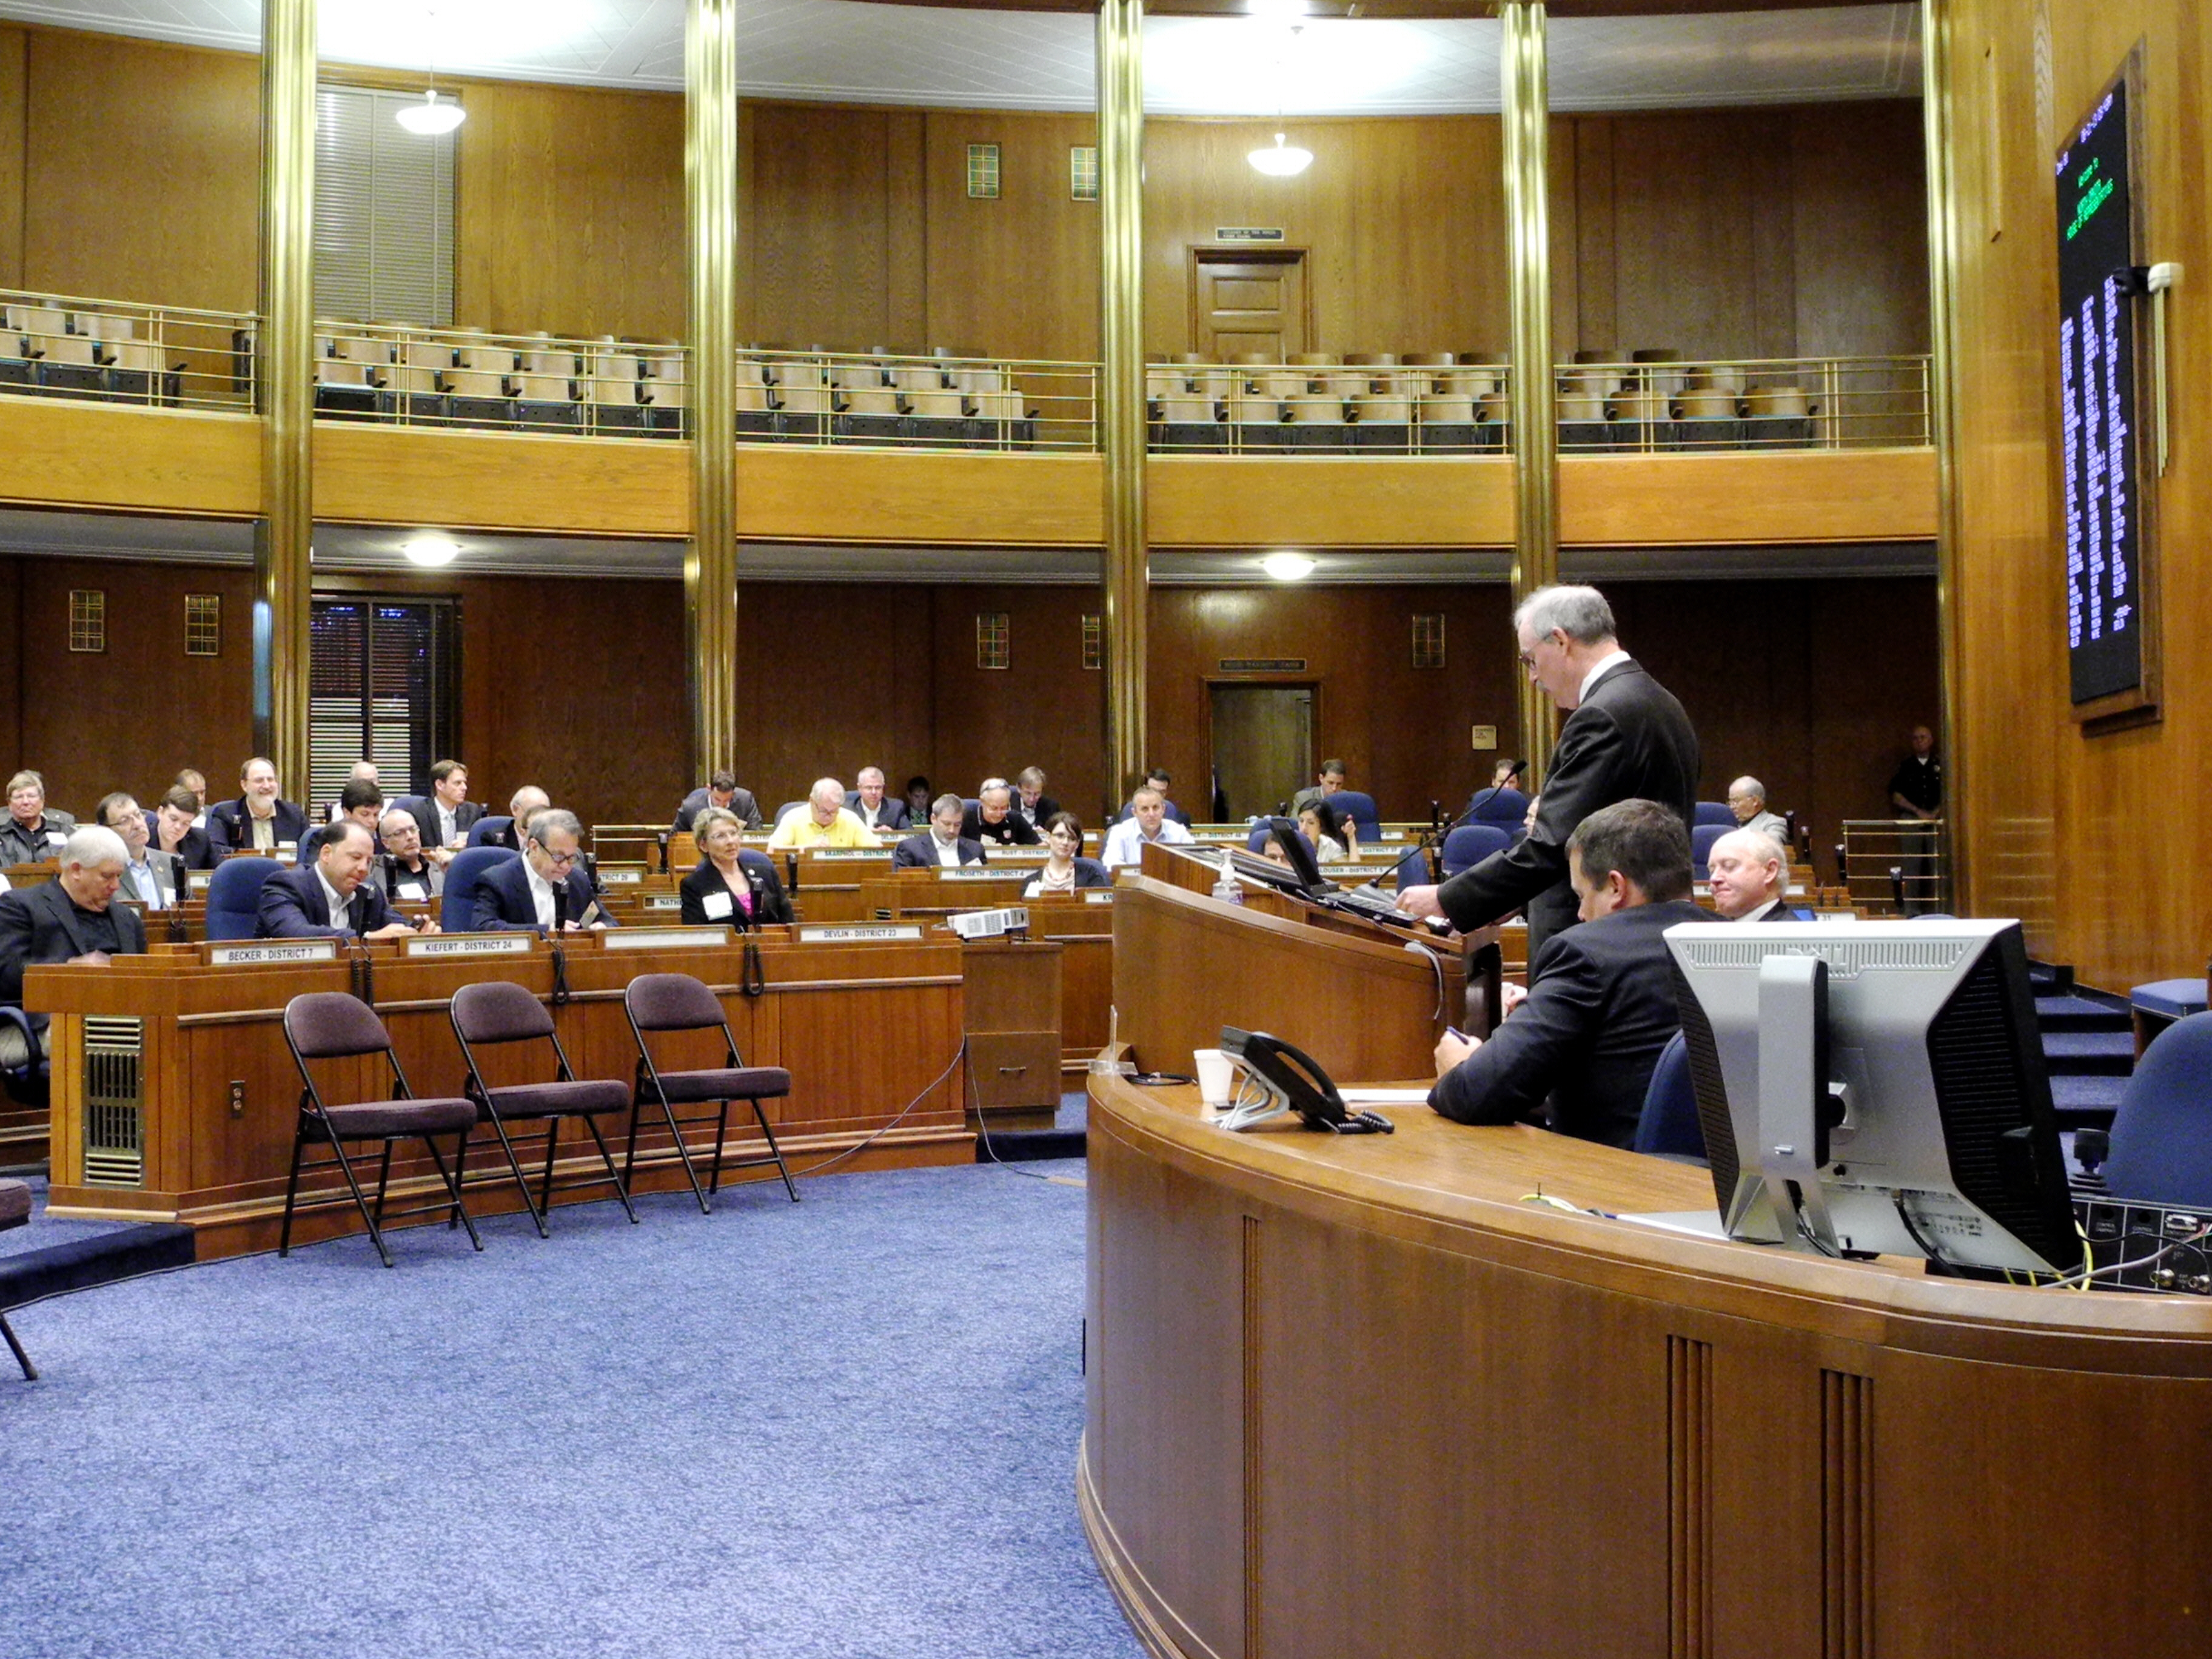 Alaska Senator Bert Stedman presides over the Energy Council's 2013 State and Provincial Trends in Energy and the Environment Conference, held in the North Dakota House of Representatives Chamber, in the State Capitol, on June 21.